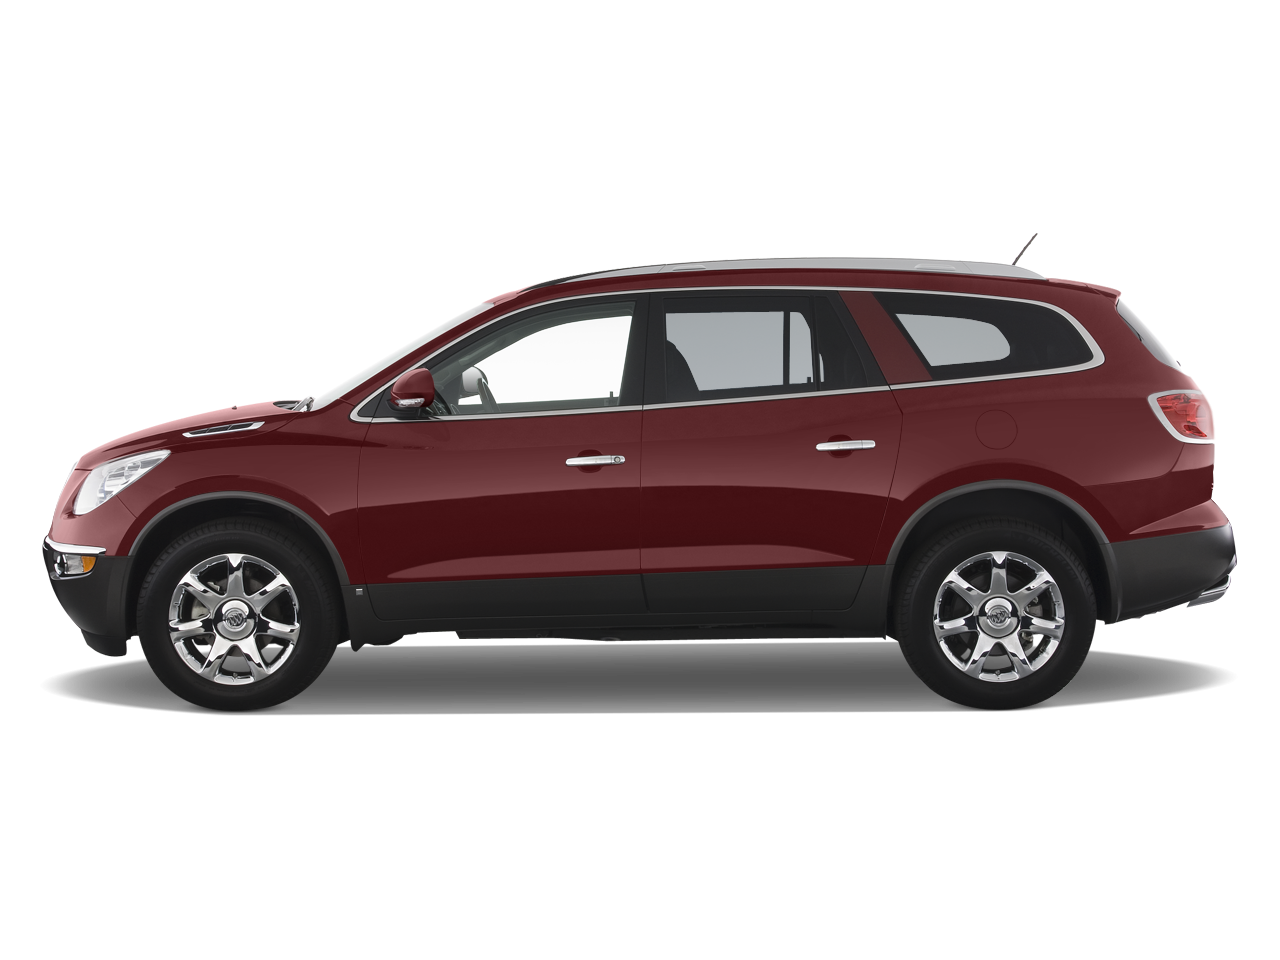 2009 Buick Enclave Owners Manual Buick Enclave Buick Models Buick